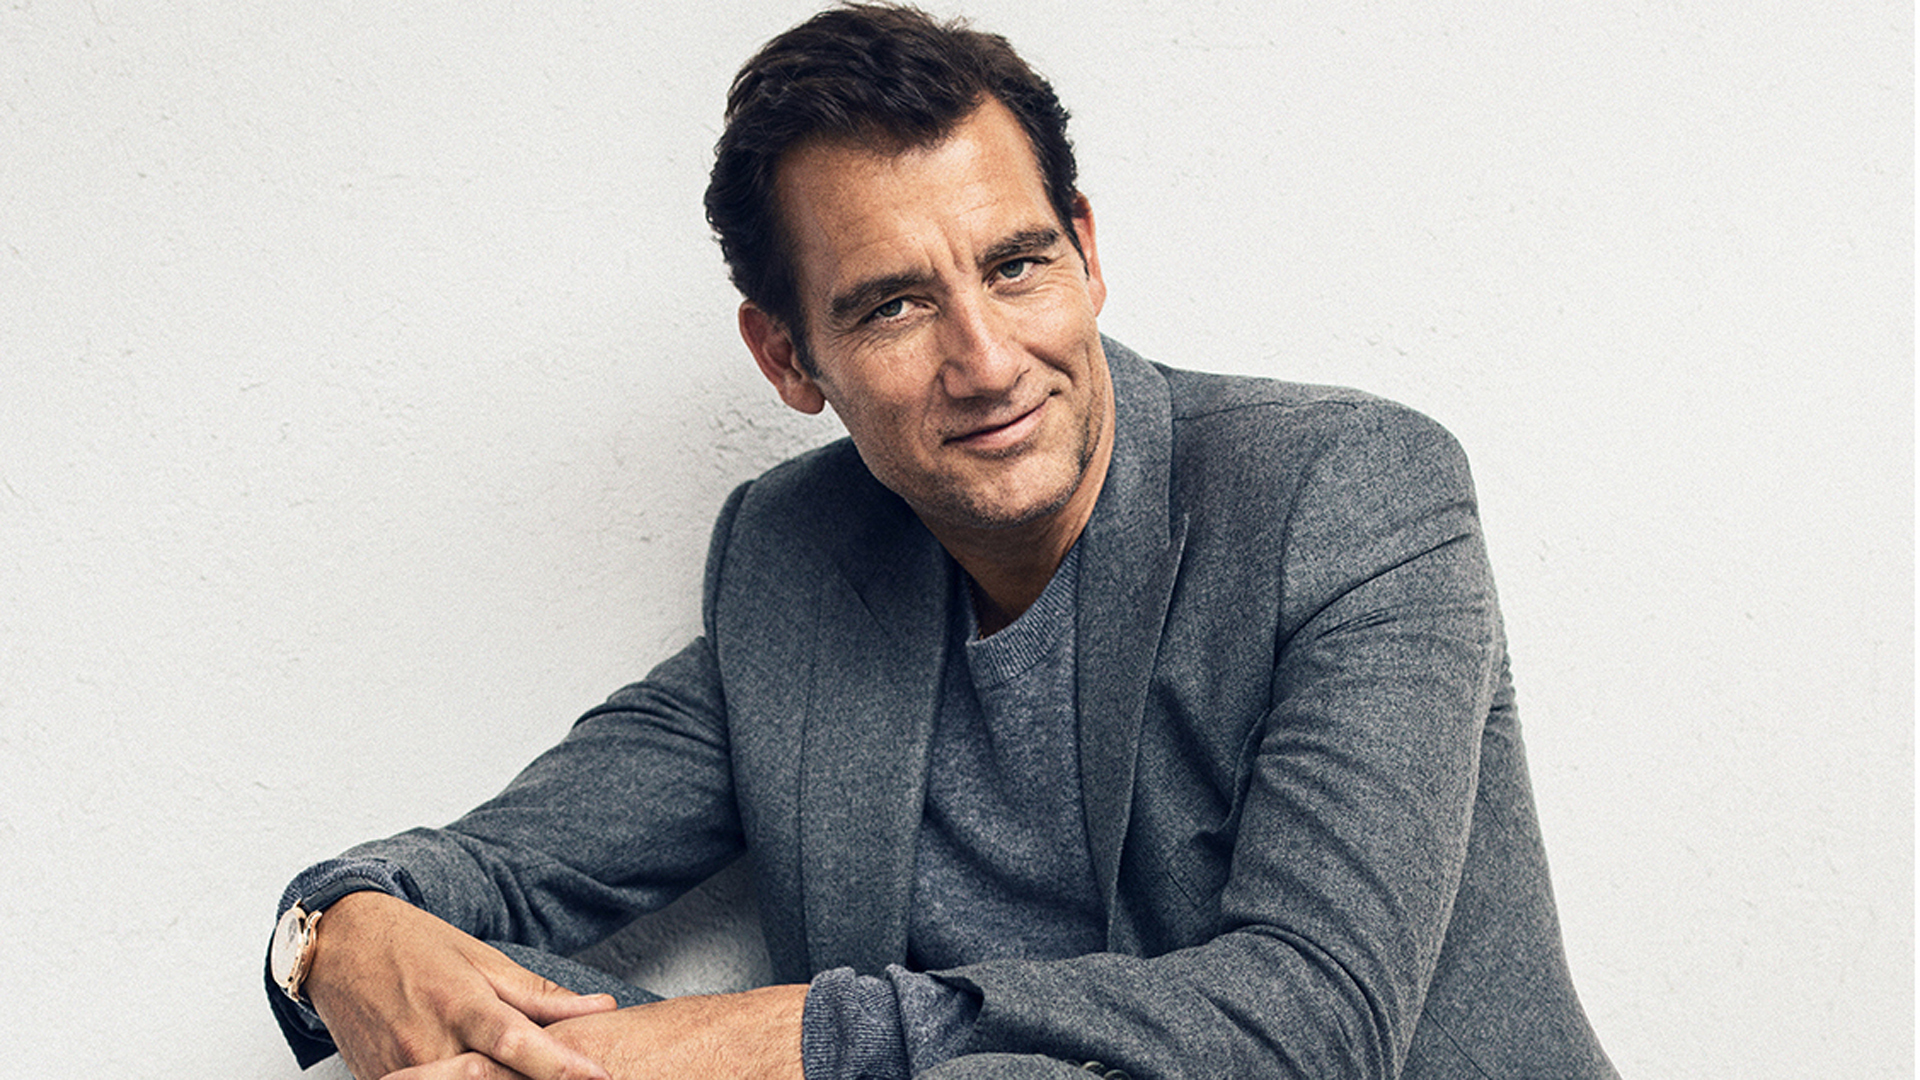 1920x1080 - Clive Owen  Wallpapers 29